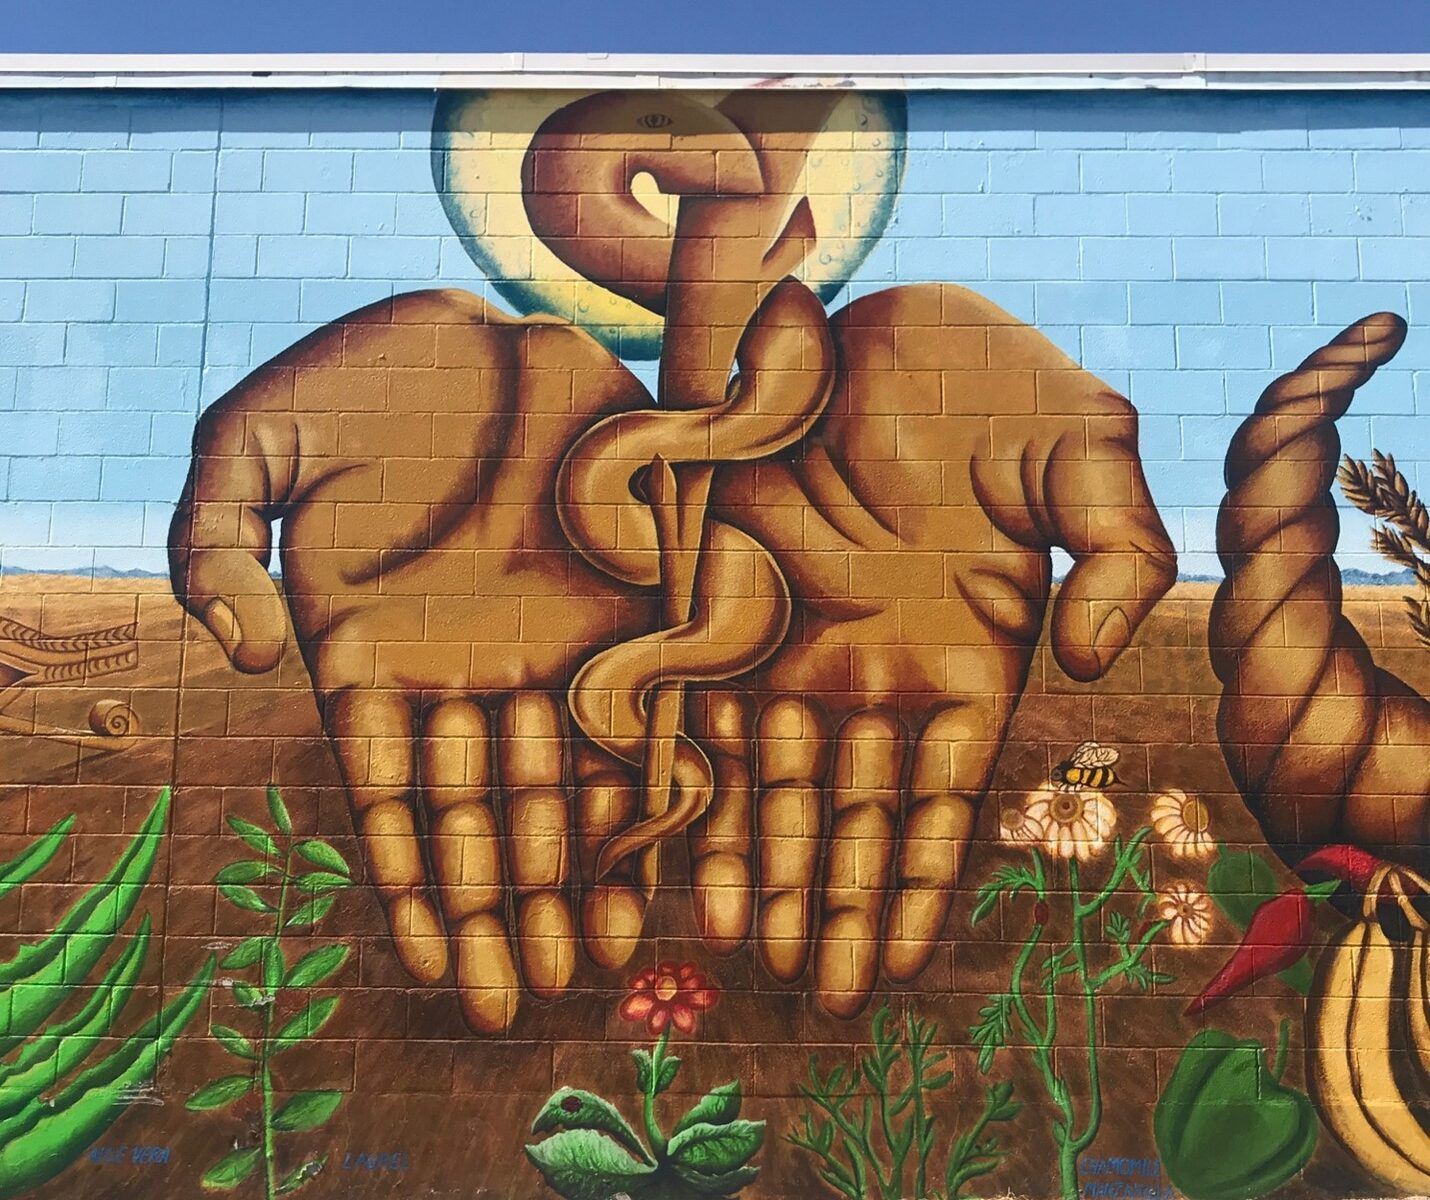 Healing Hands and Rod of Asclepius in desert landscape